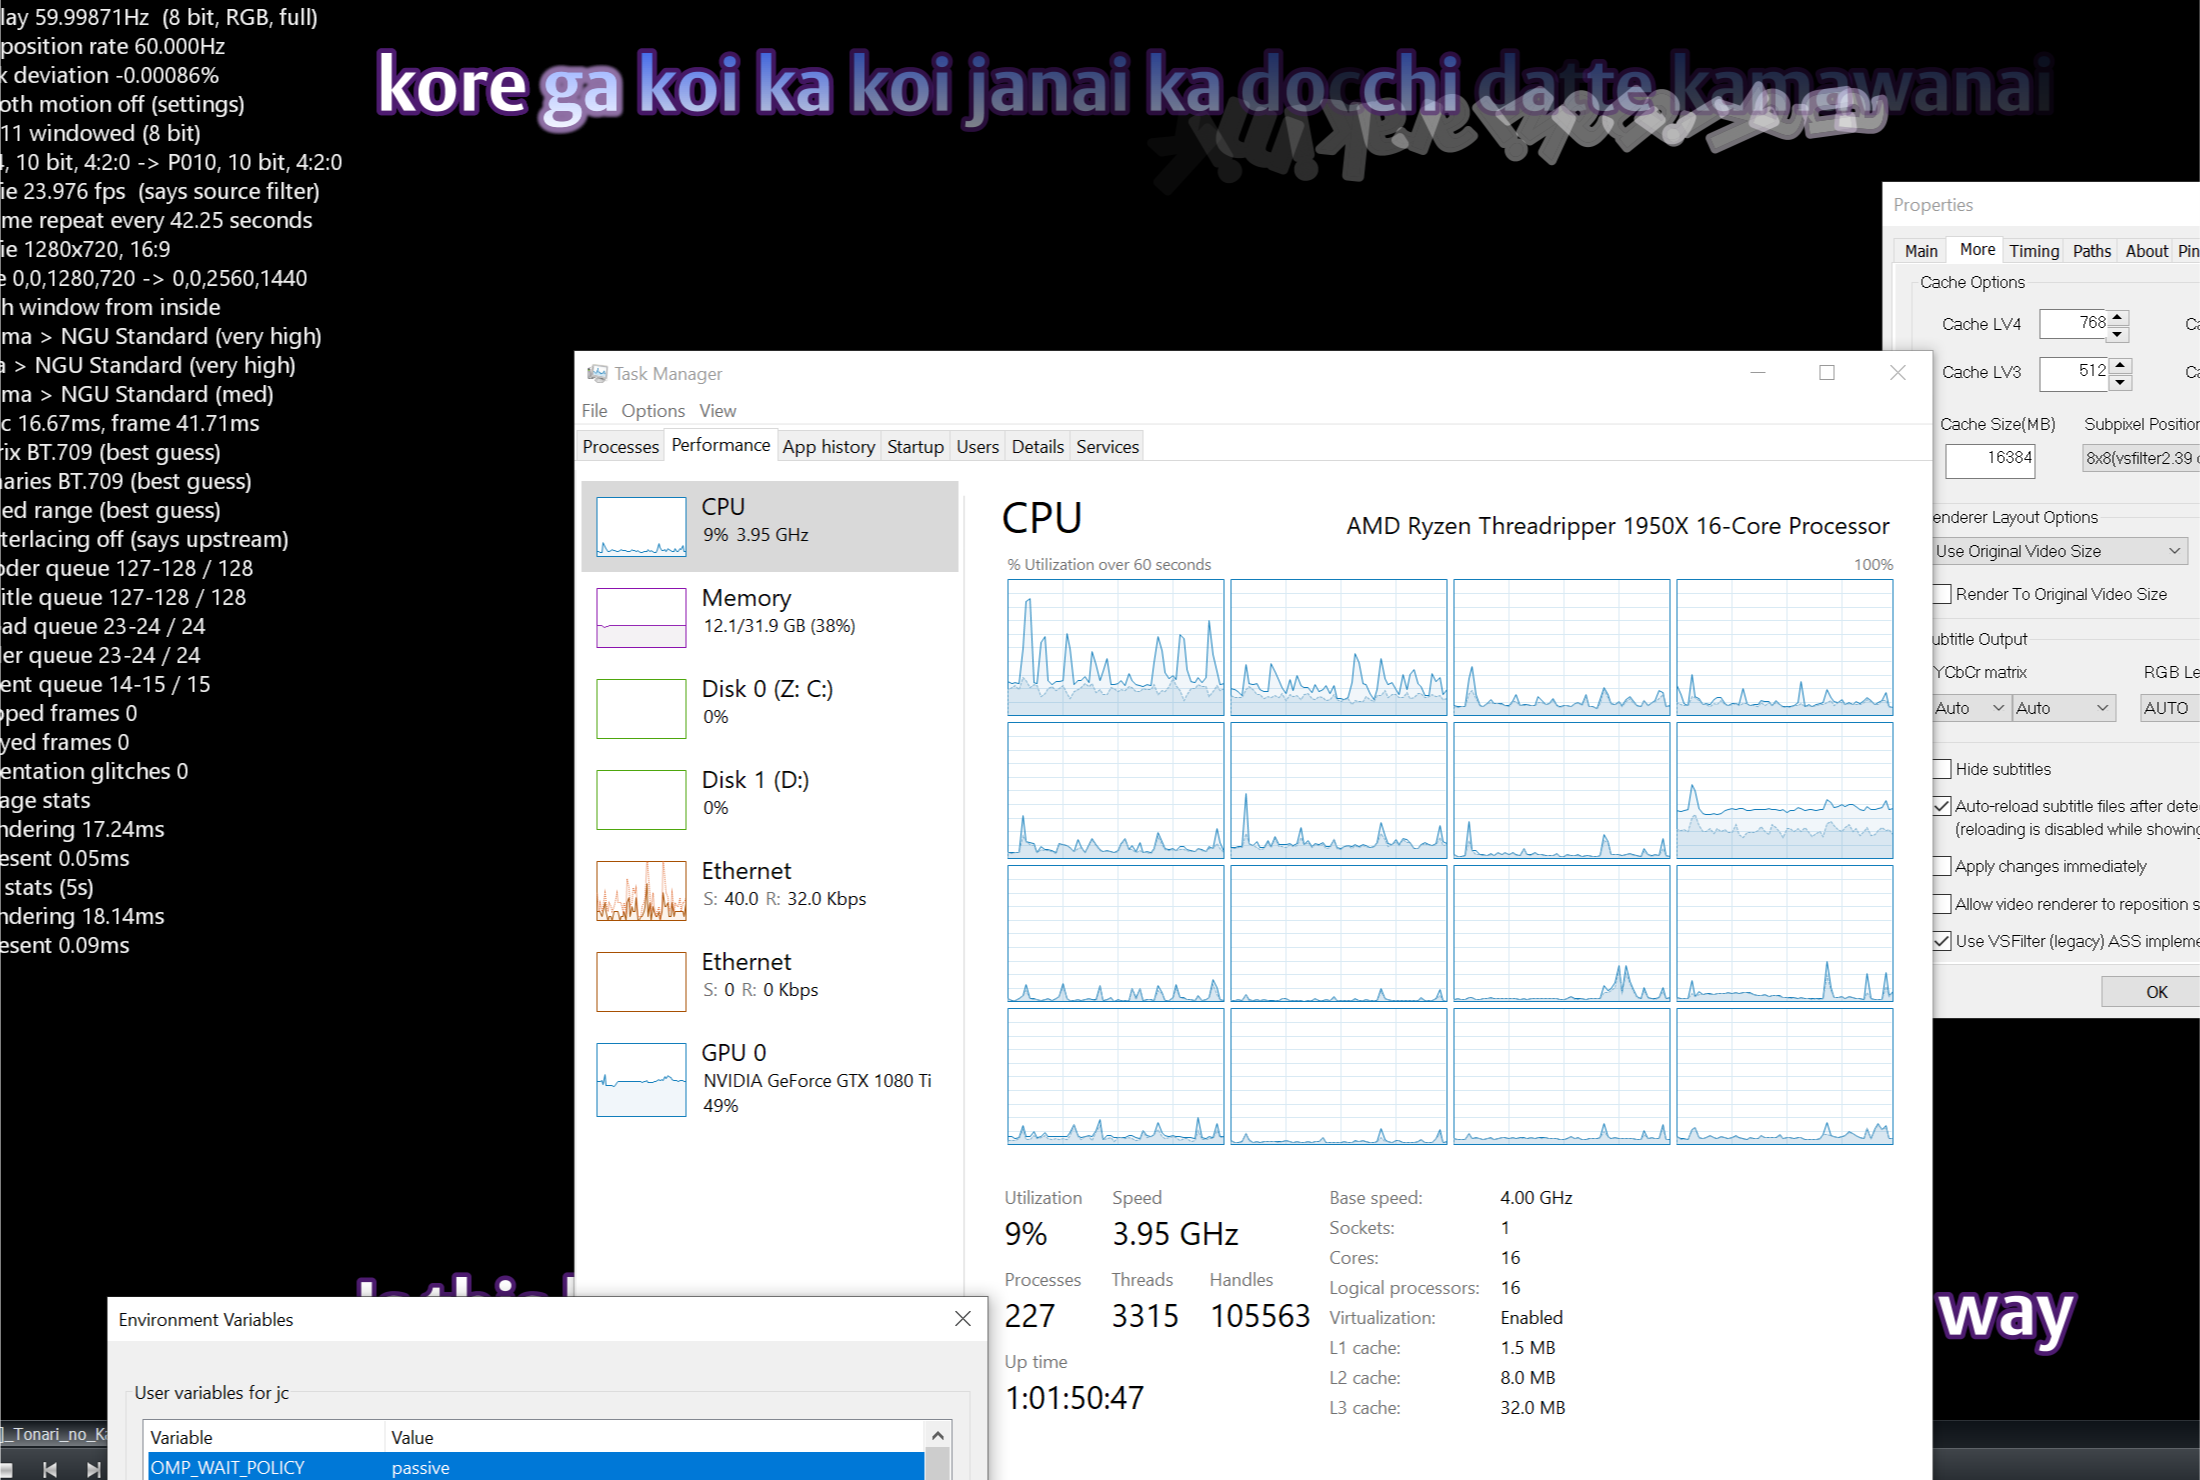 VS2019, Parallelization, SSE2 for FillAlphaMashBody on x64 and other